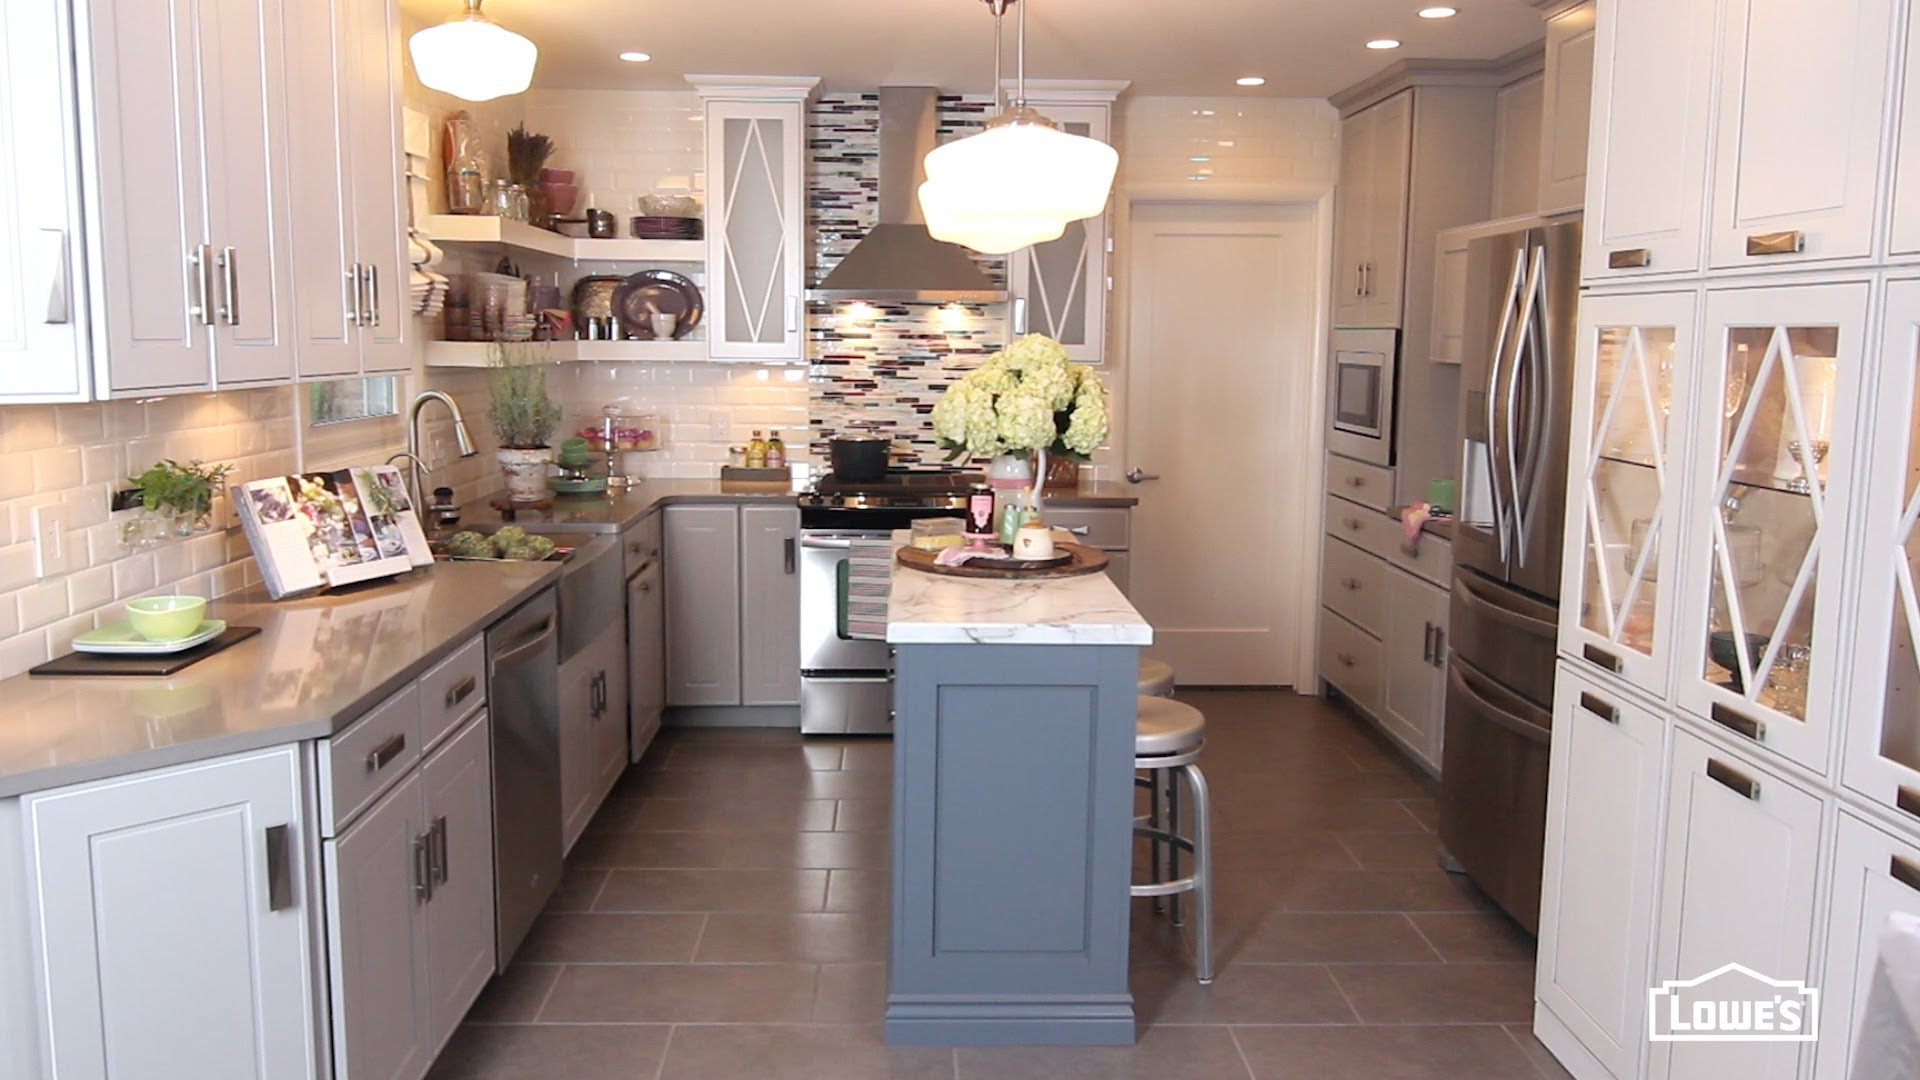 Best ideas about Remodel Kitchen Ideas . Save or Pin 50 Ideas about Kitchen Remodel s Rafael Home Biz Now.